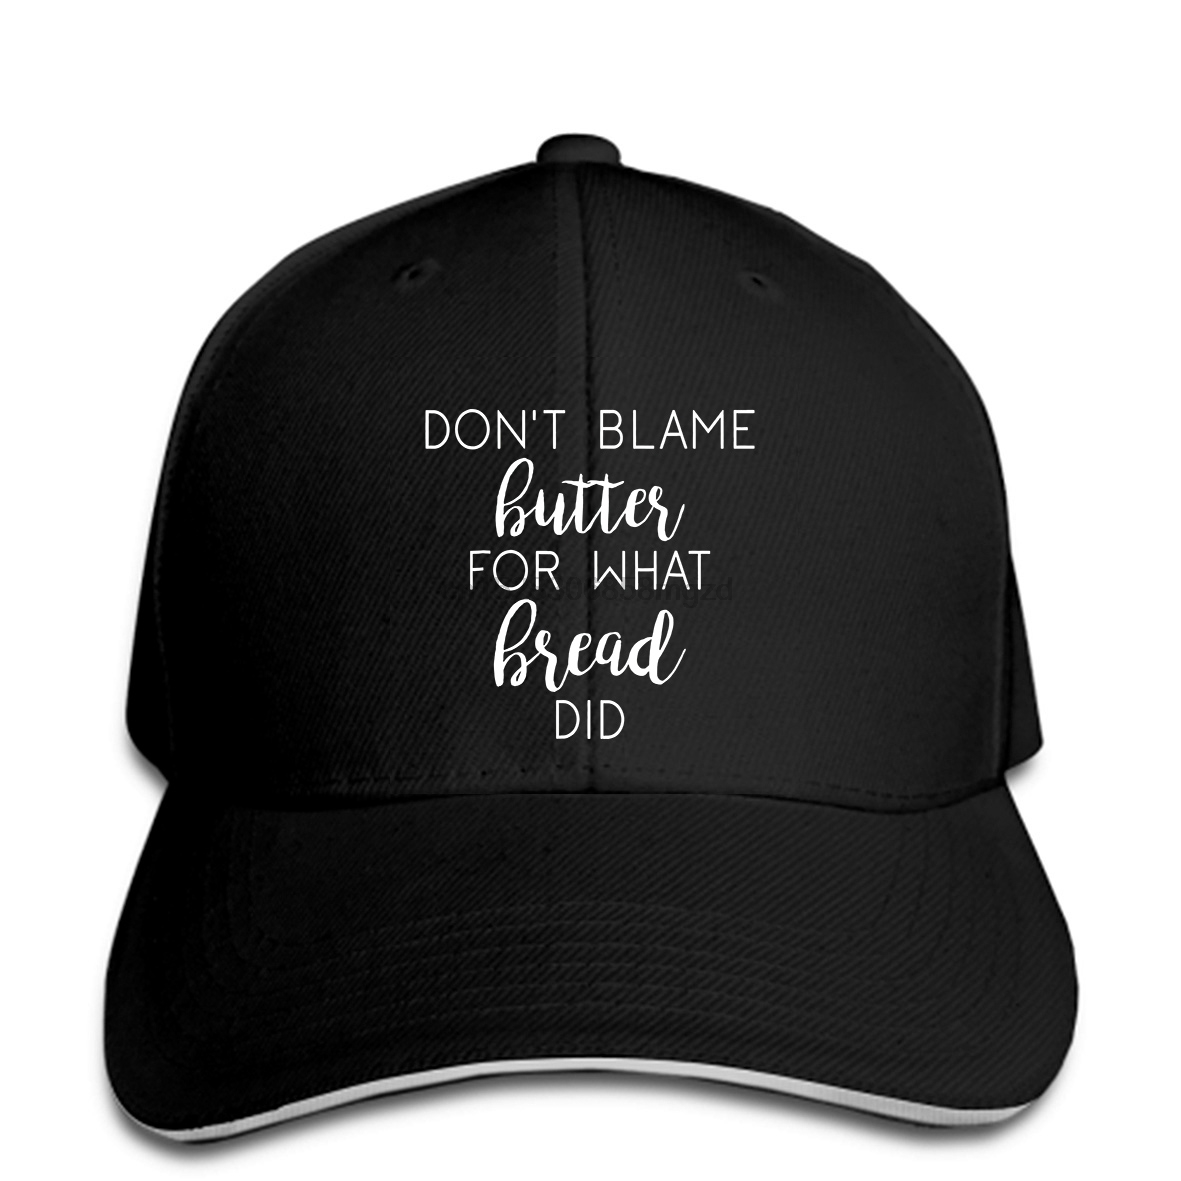 Don't Blame Butter For What Bread Did Funny Keto Diet Ketosis Cool Casual pride Men Baseball Cap men Unisex Fashion Snapback Cap image